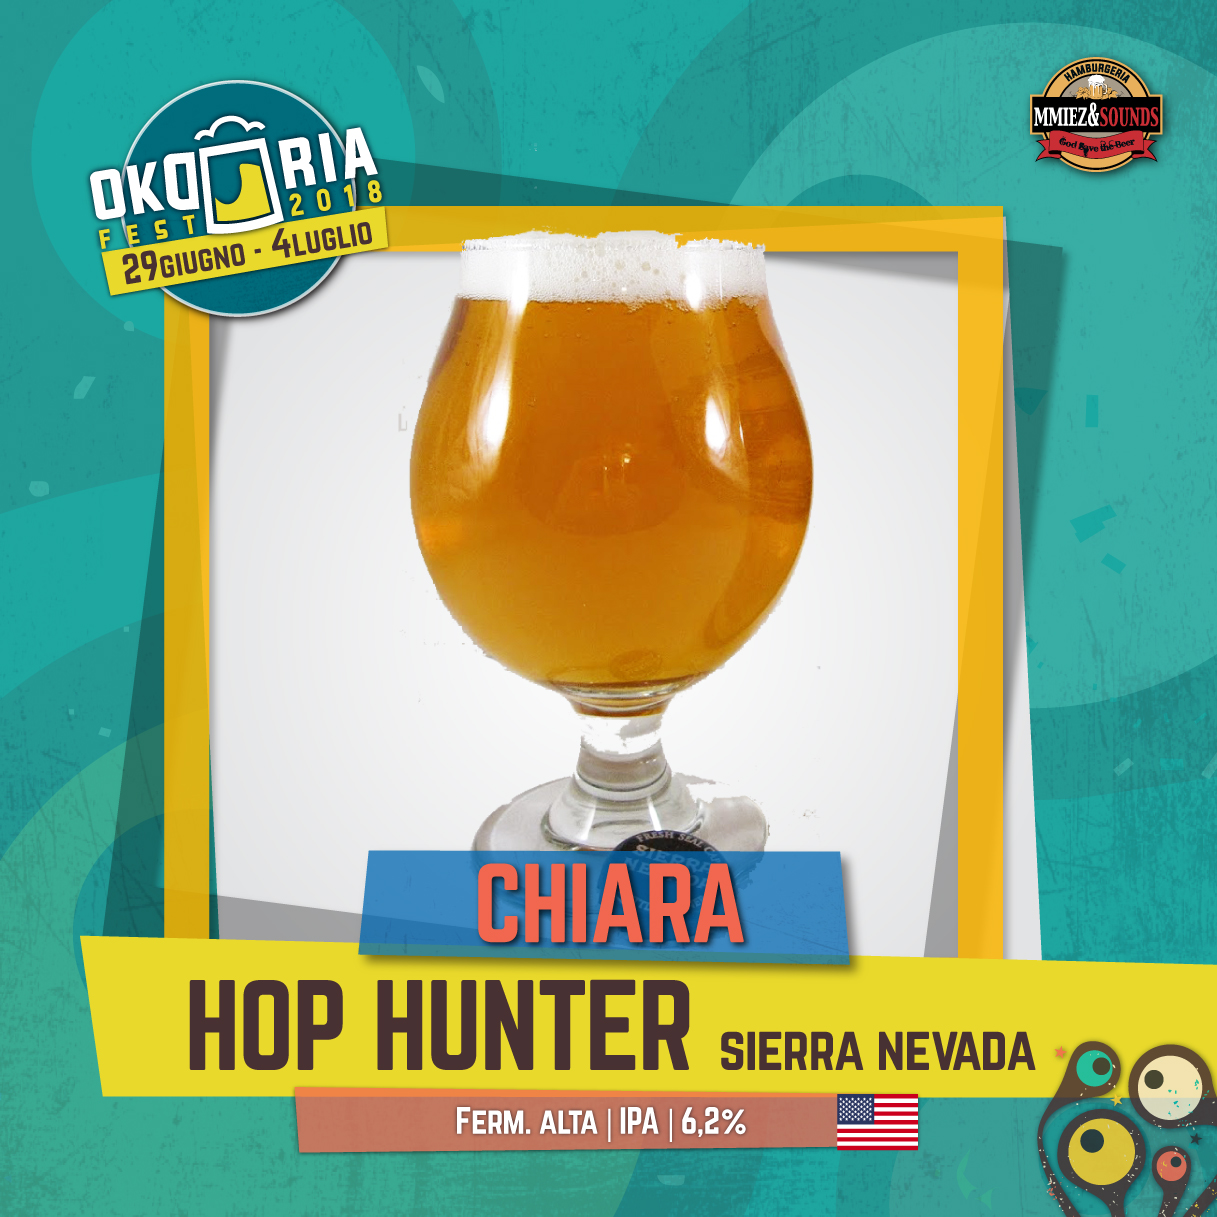 Sierra Nevada Hop Hunter